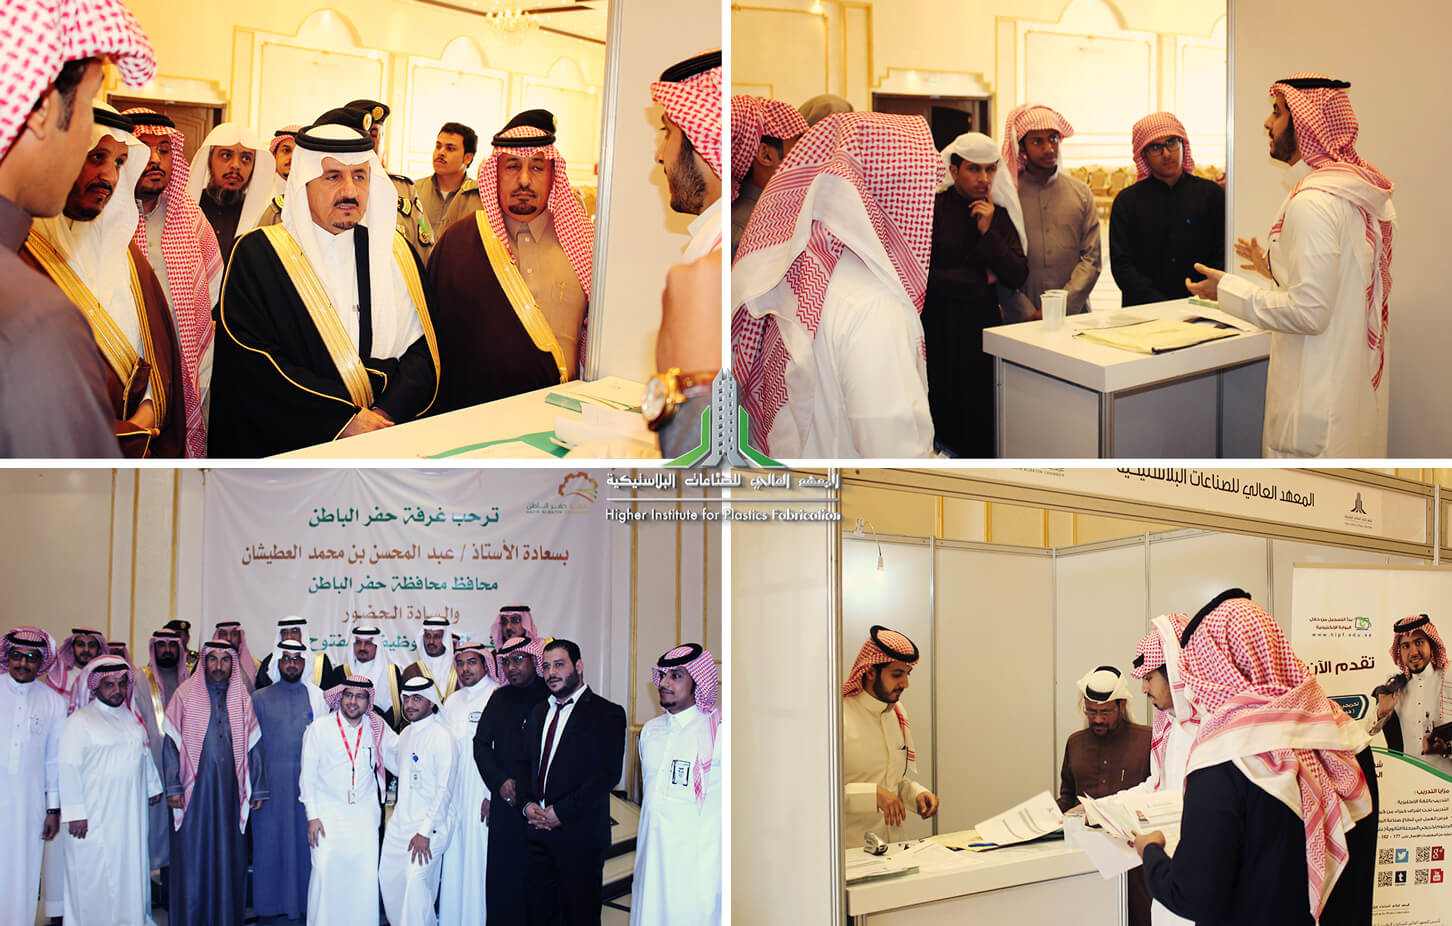 The participation of HIPF in the Employment Exhibition at Hafr Al-Batin